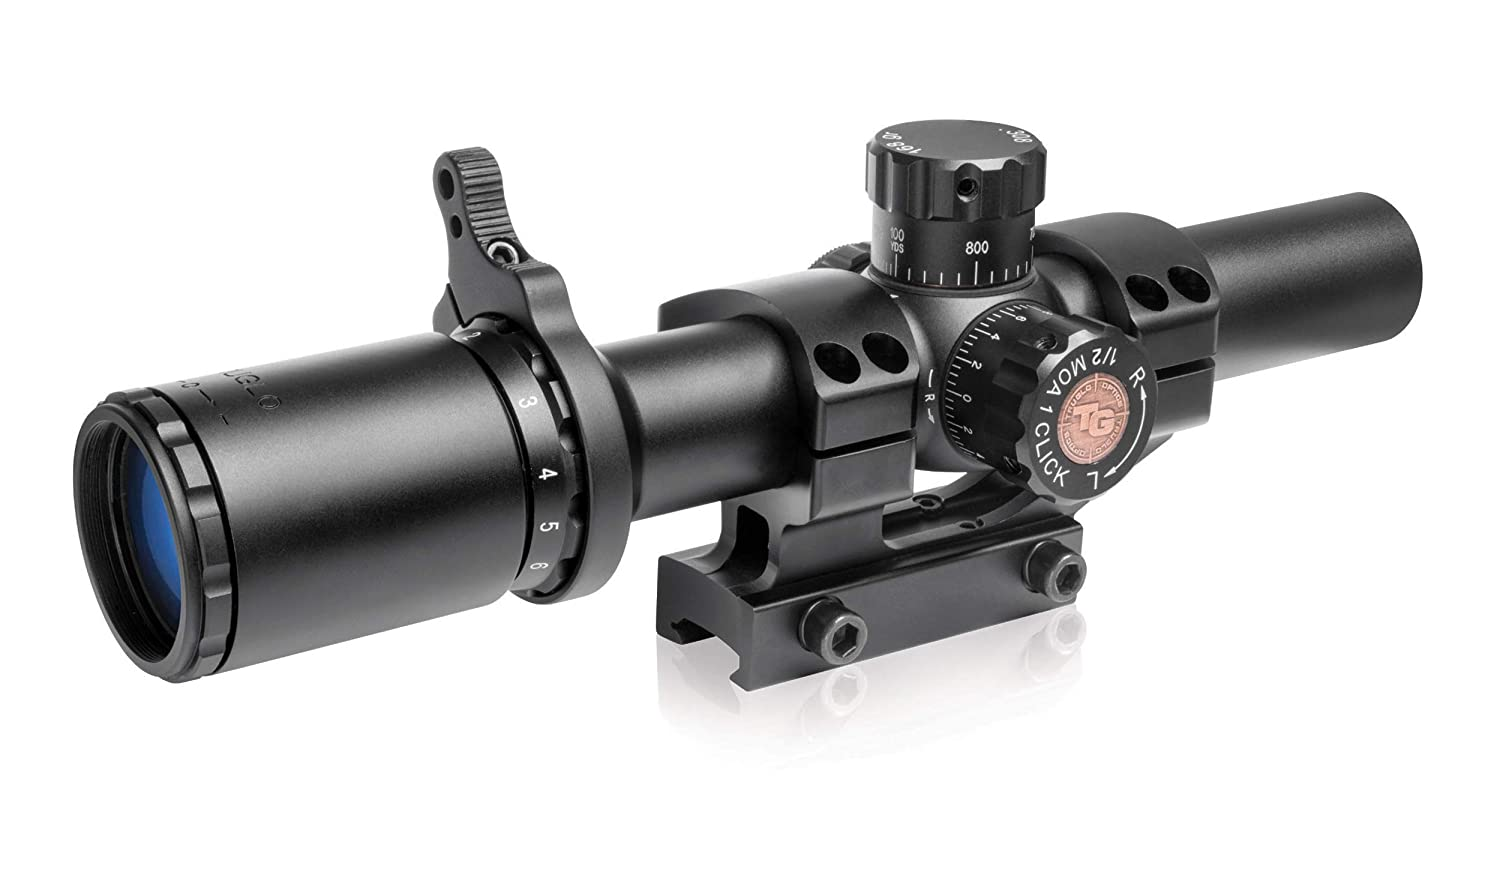 13.Truglo Tru-Brite 30 Series Illuminated Tactical Rifle Scope